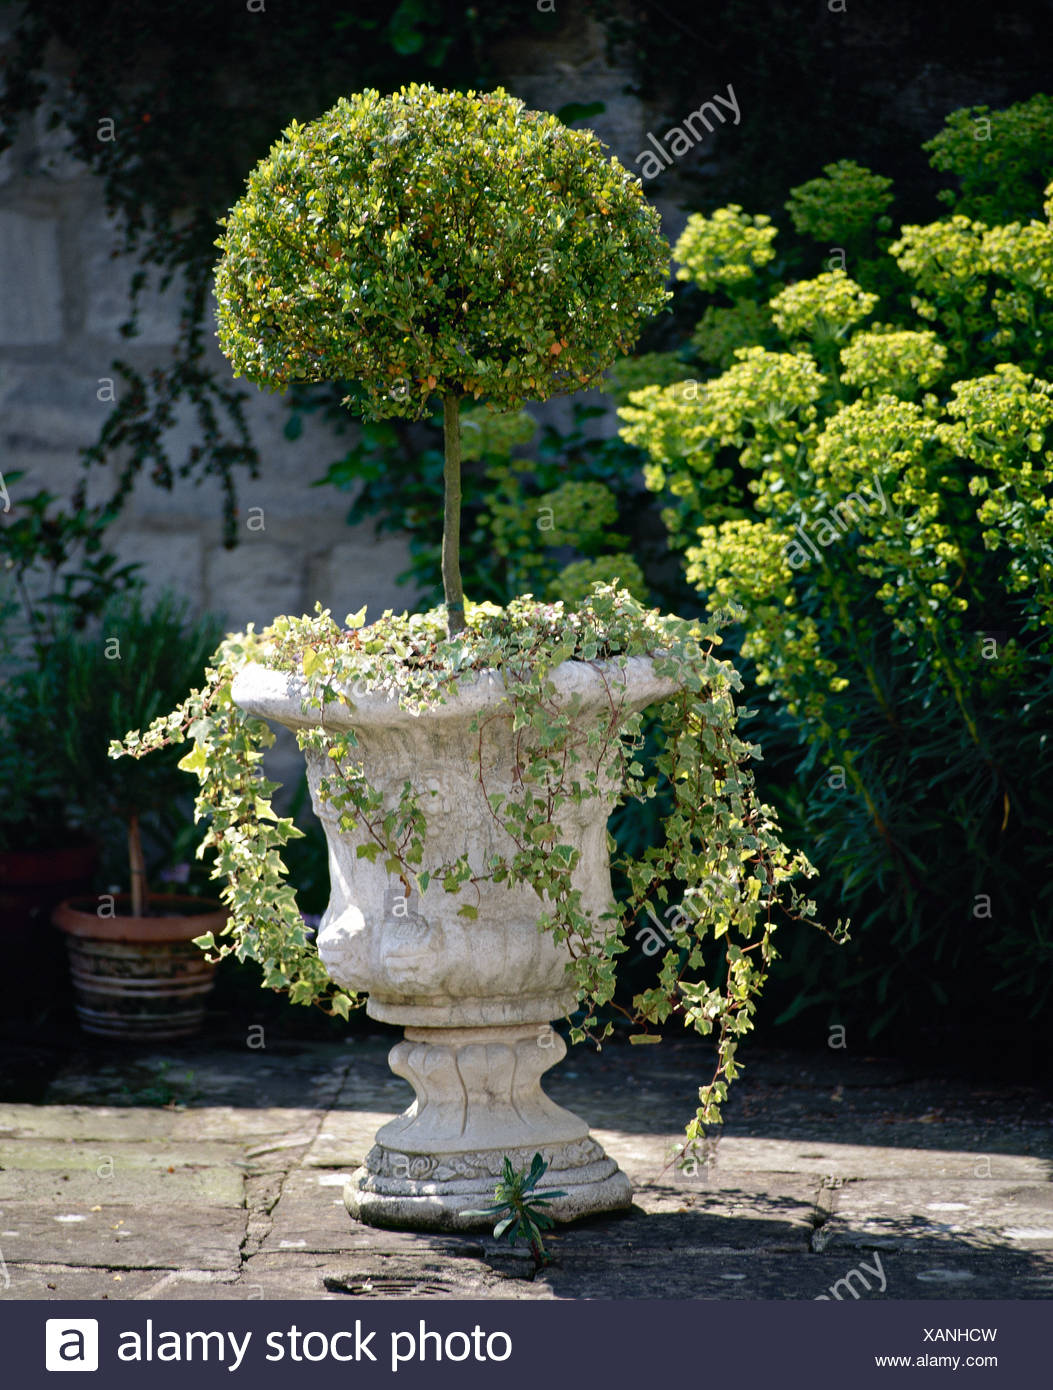 Small Topiary Tree And Trailing Ivy Growing In A Stone Urn Planter Stock Photo Alamy